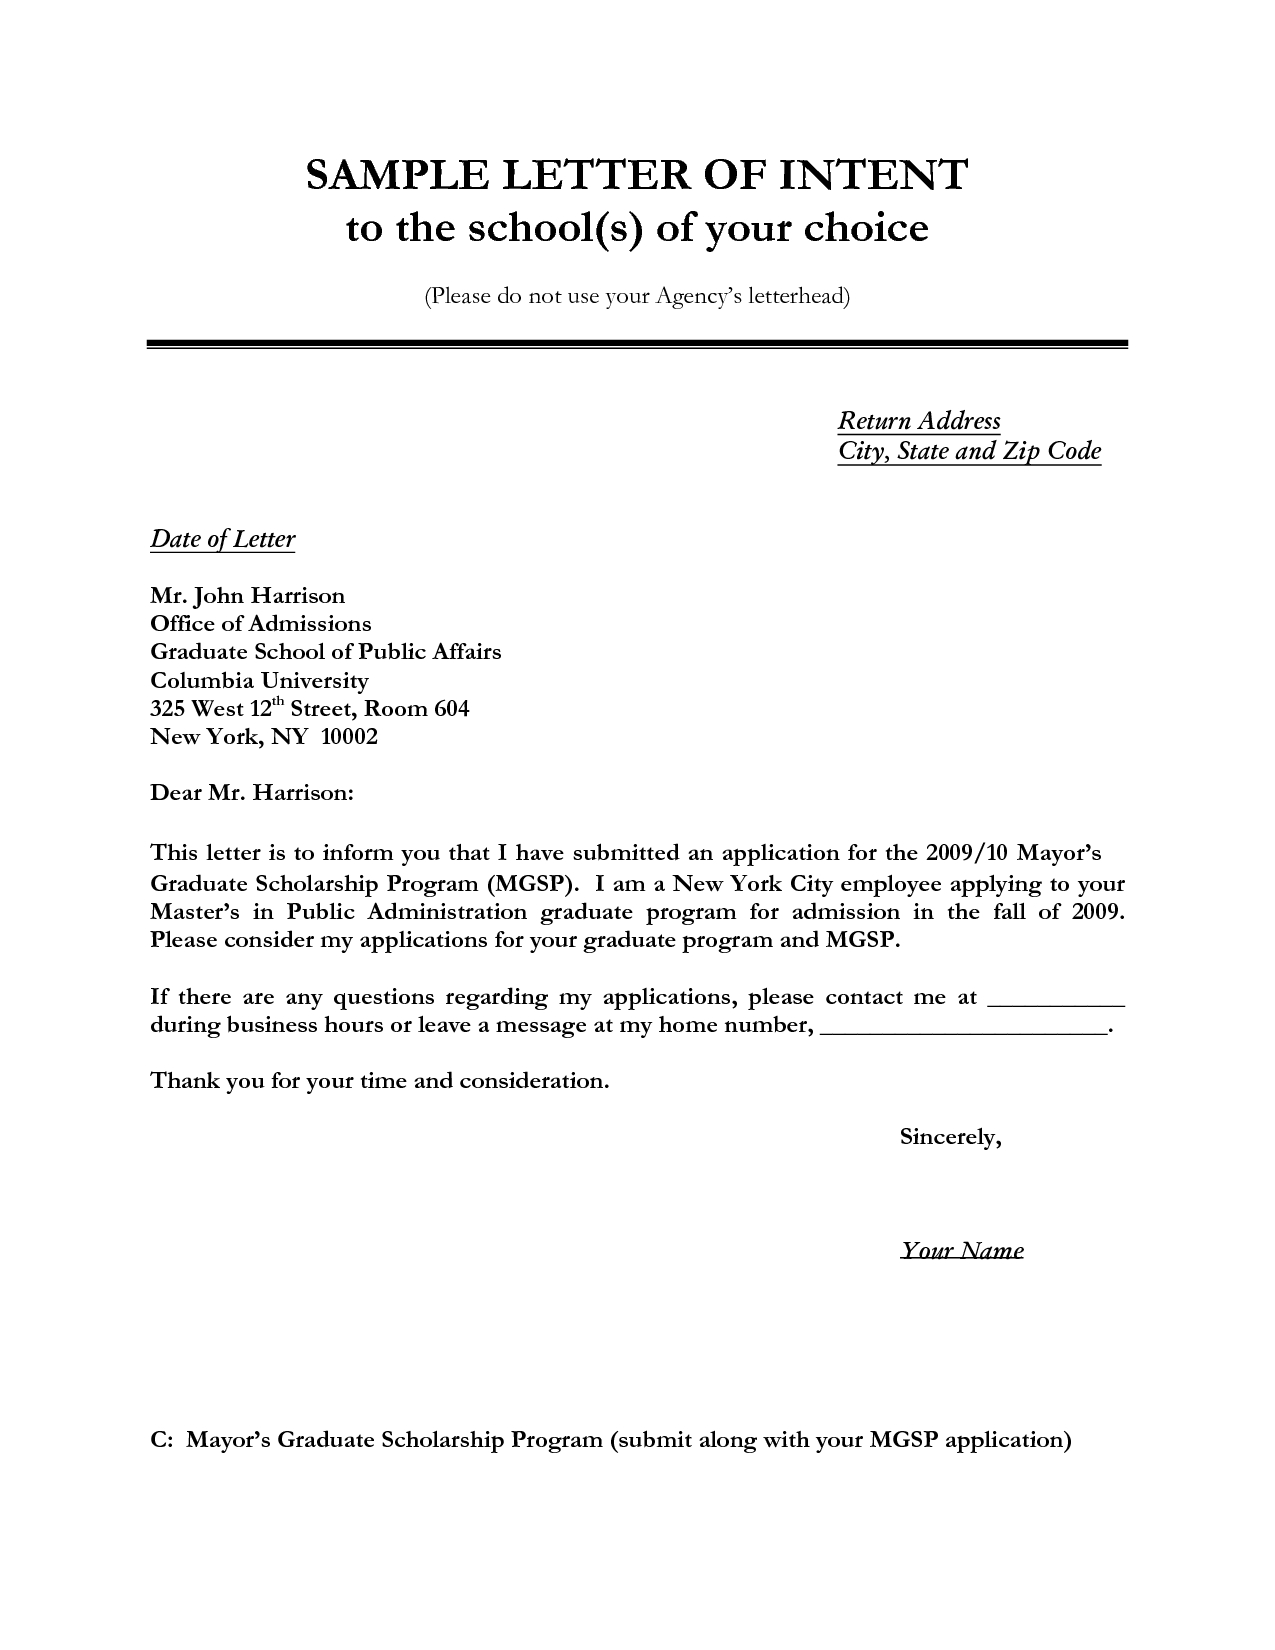 Constructive Eviction Letter Template - Letter Of Intent Sample